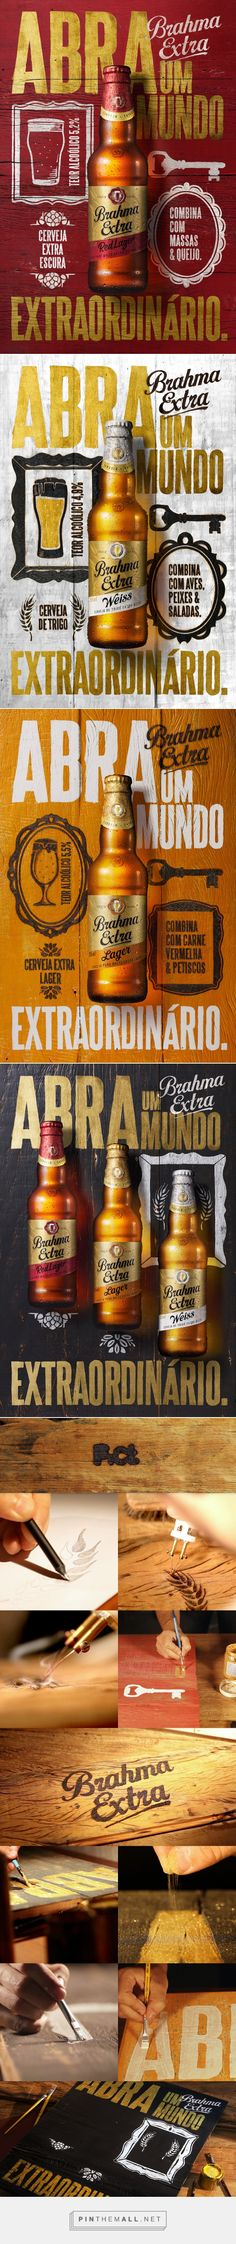 Africa Brahma Extra by Pict Estúdio Coperate Design, Label Design, Layout Design, Packaging Design, Branding Design, Print Design, Creative Advertising, Advertising Design, Advertising Ideas